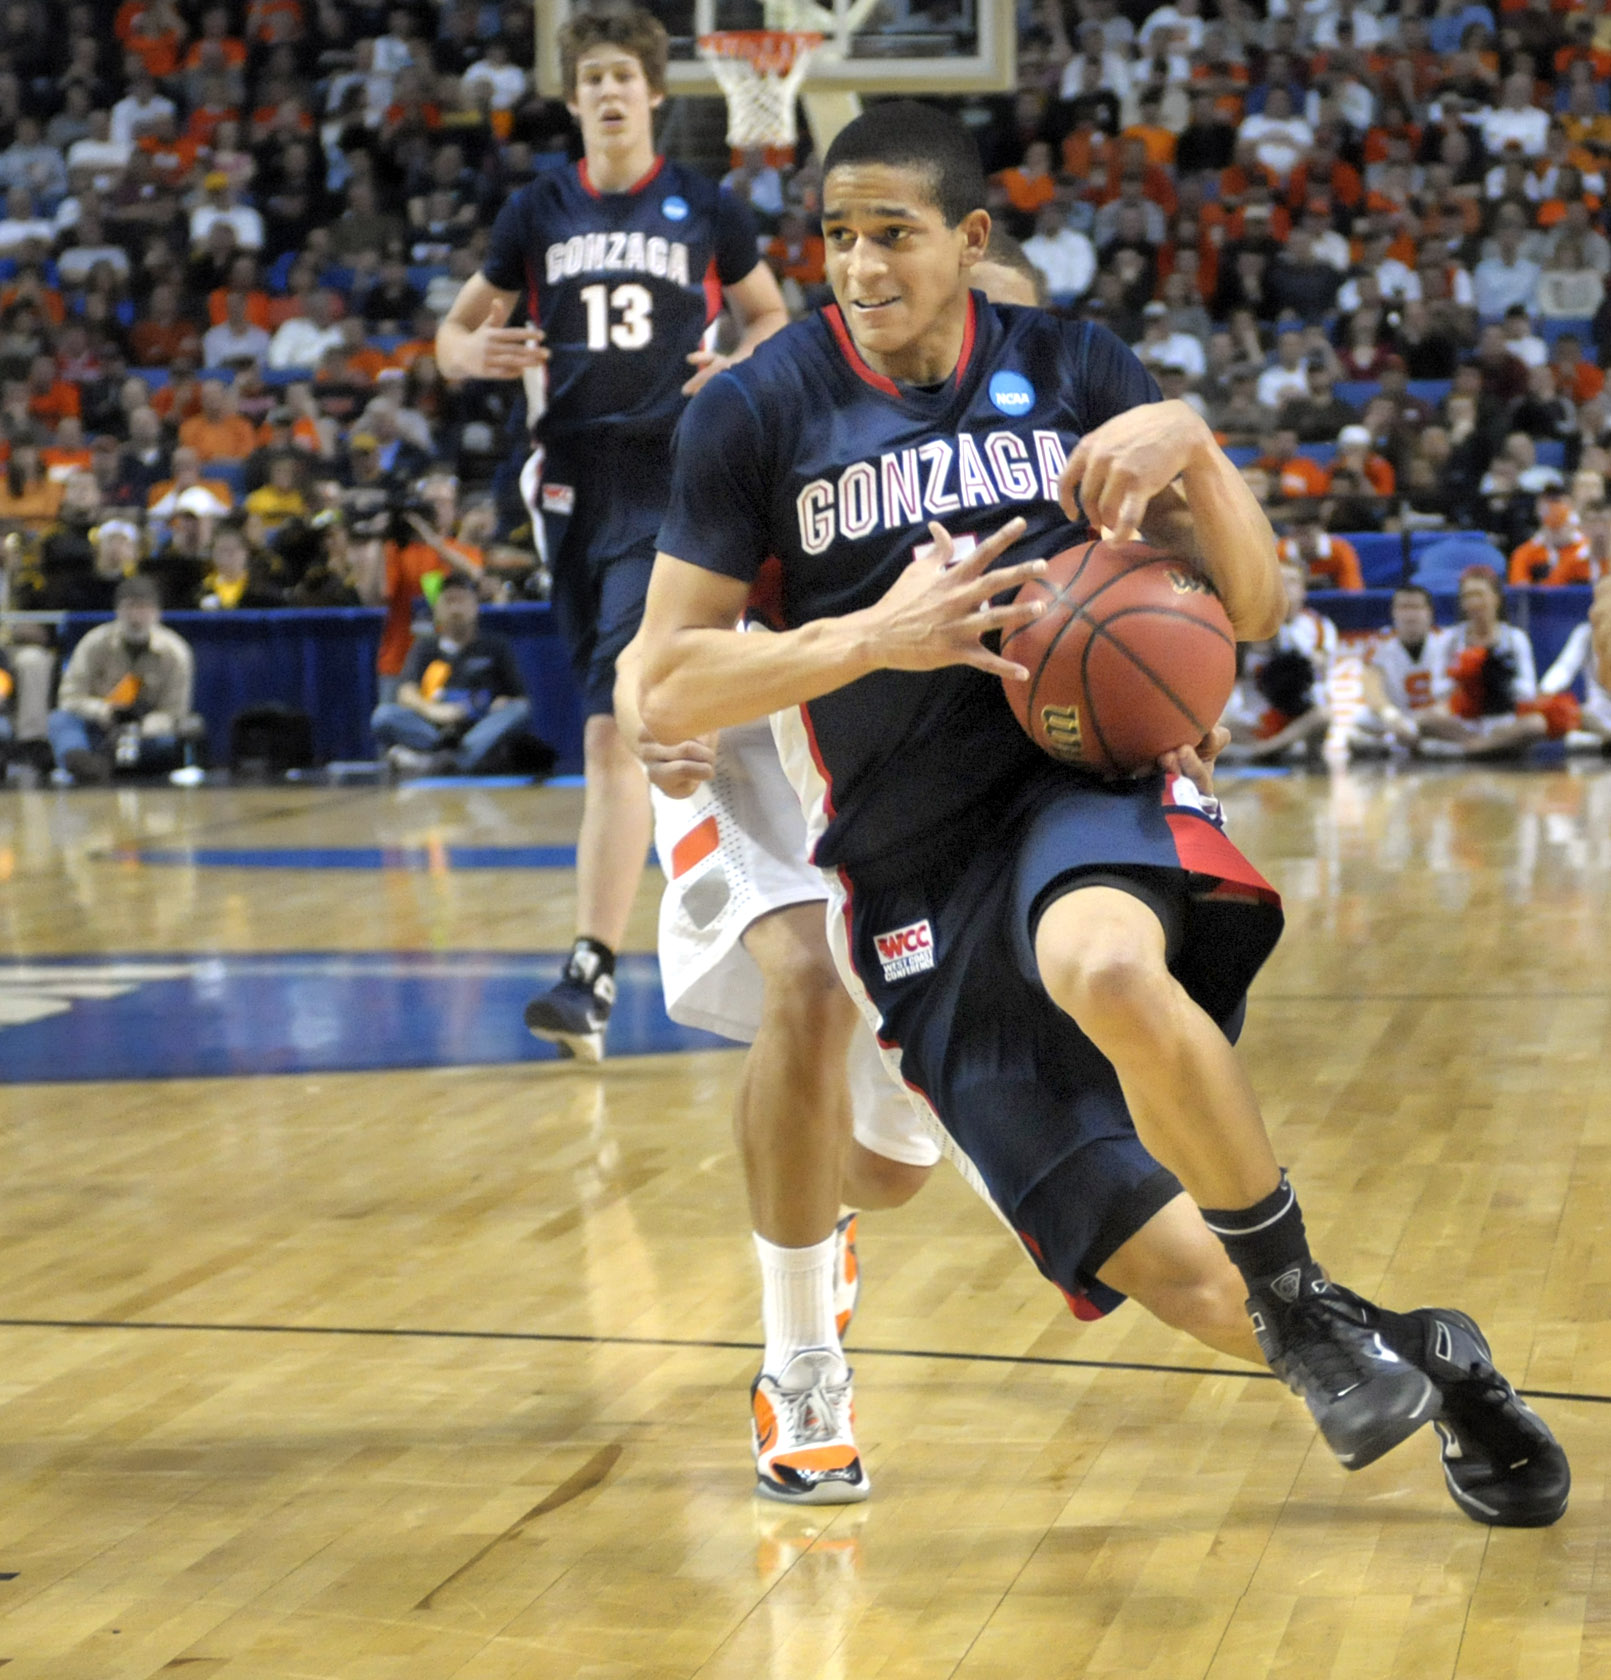 Vilarino to play for Appalachian State | The Spokesman-Review